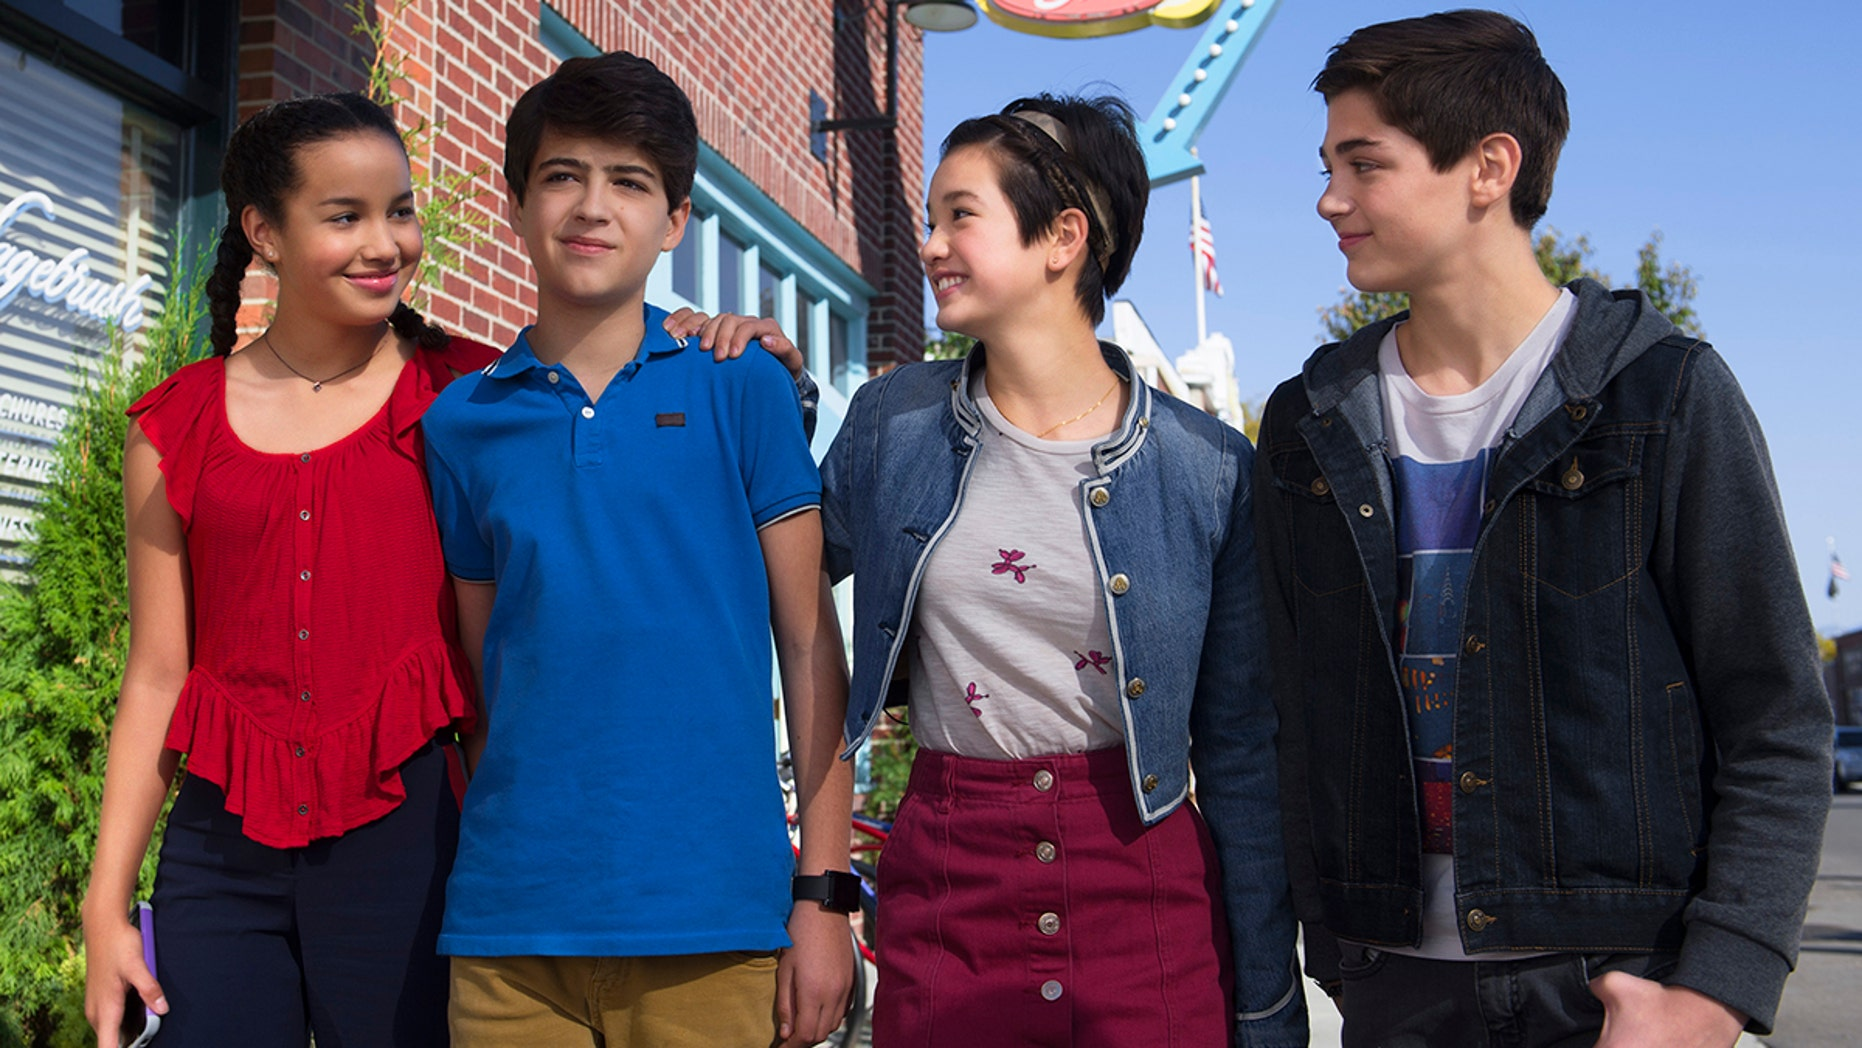 "ANDI MACK - In ""Andi Mack,"" a series about a 13 year-old girl and her friends each figuring out who they are, the teen characters model inclusion and respect for others. (Disney Channel/Fred Hayes)"